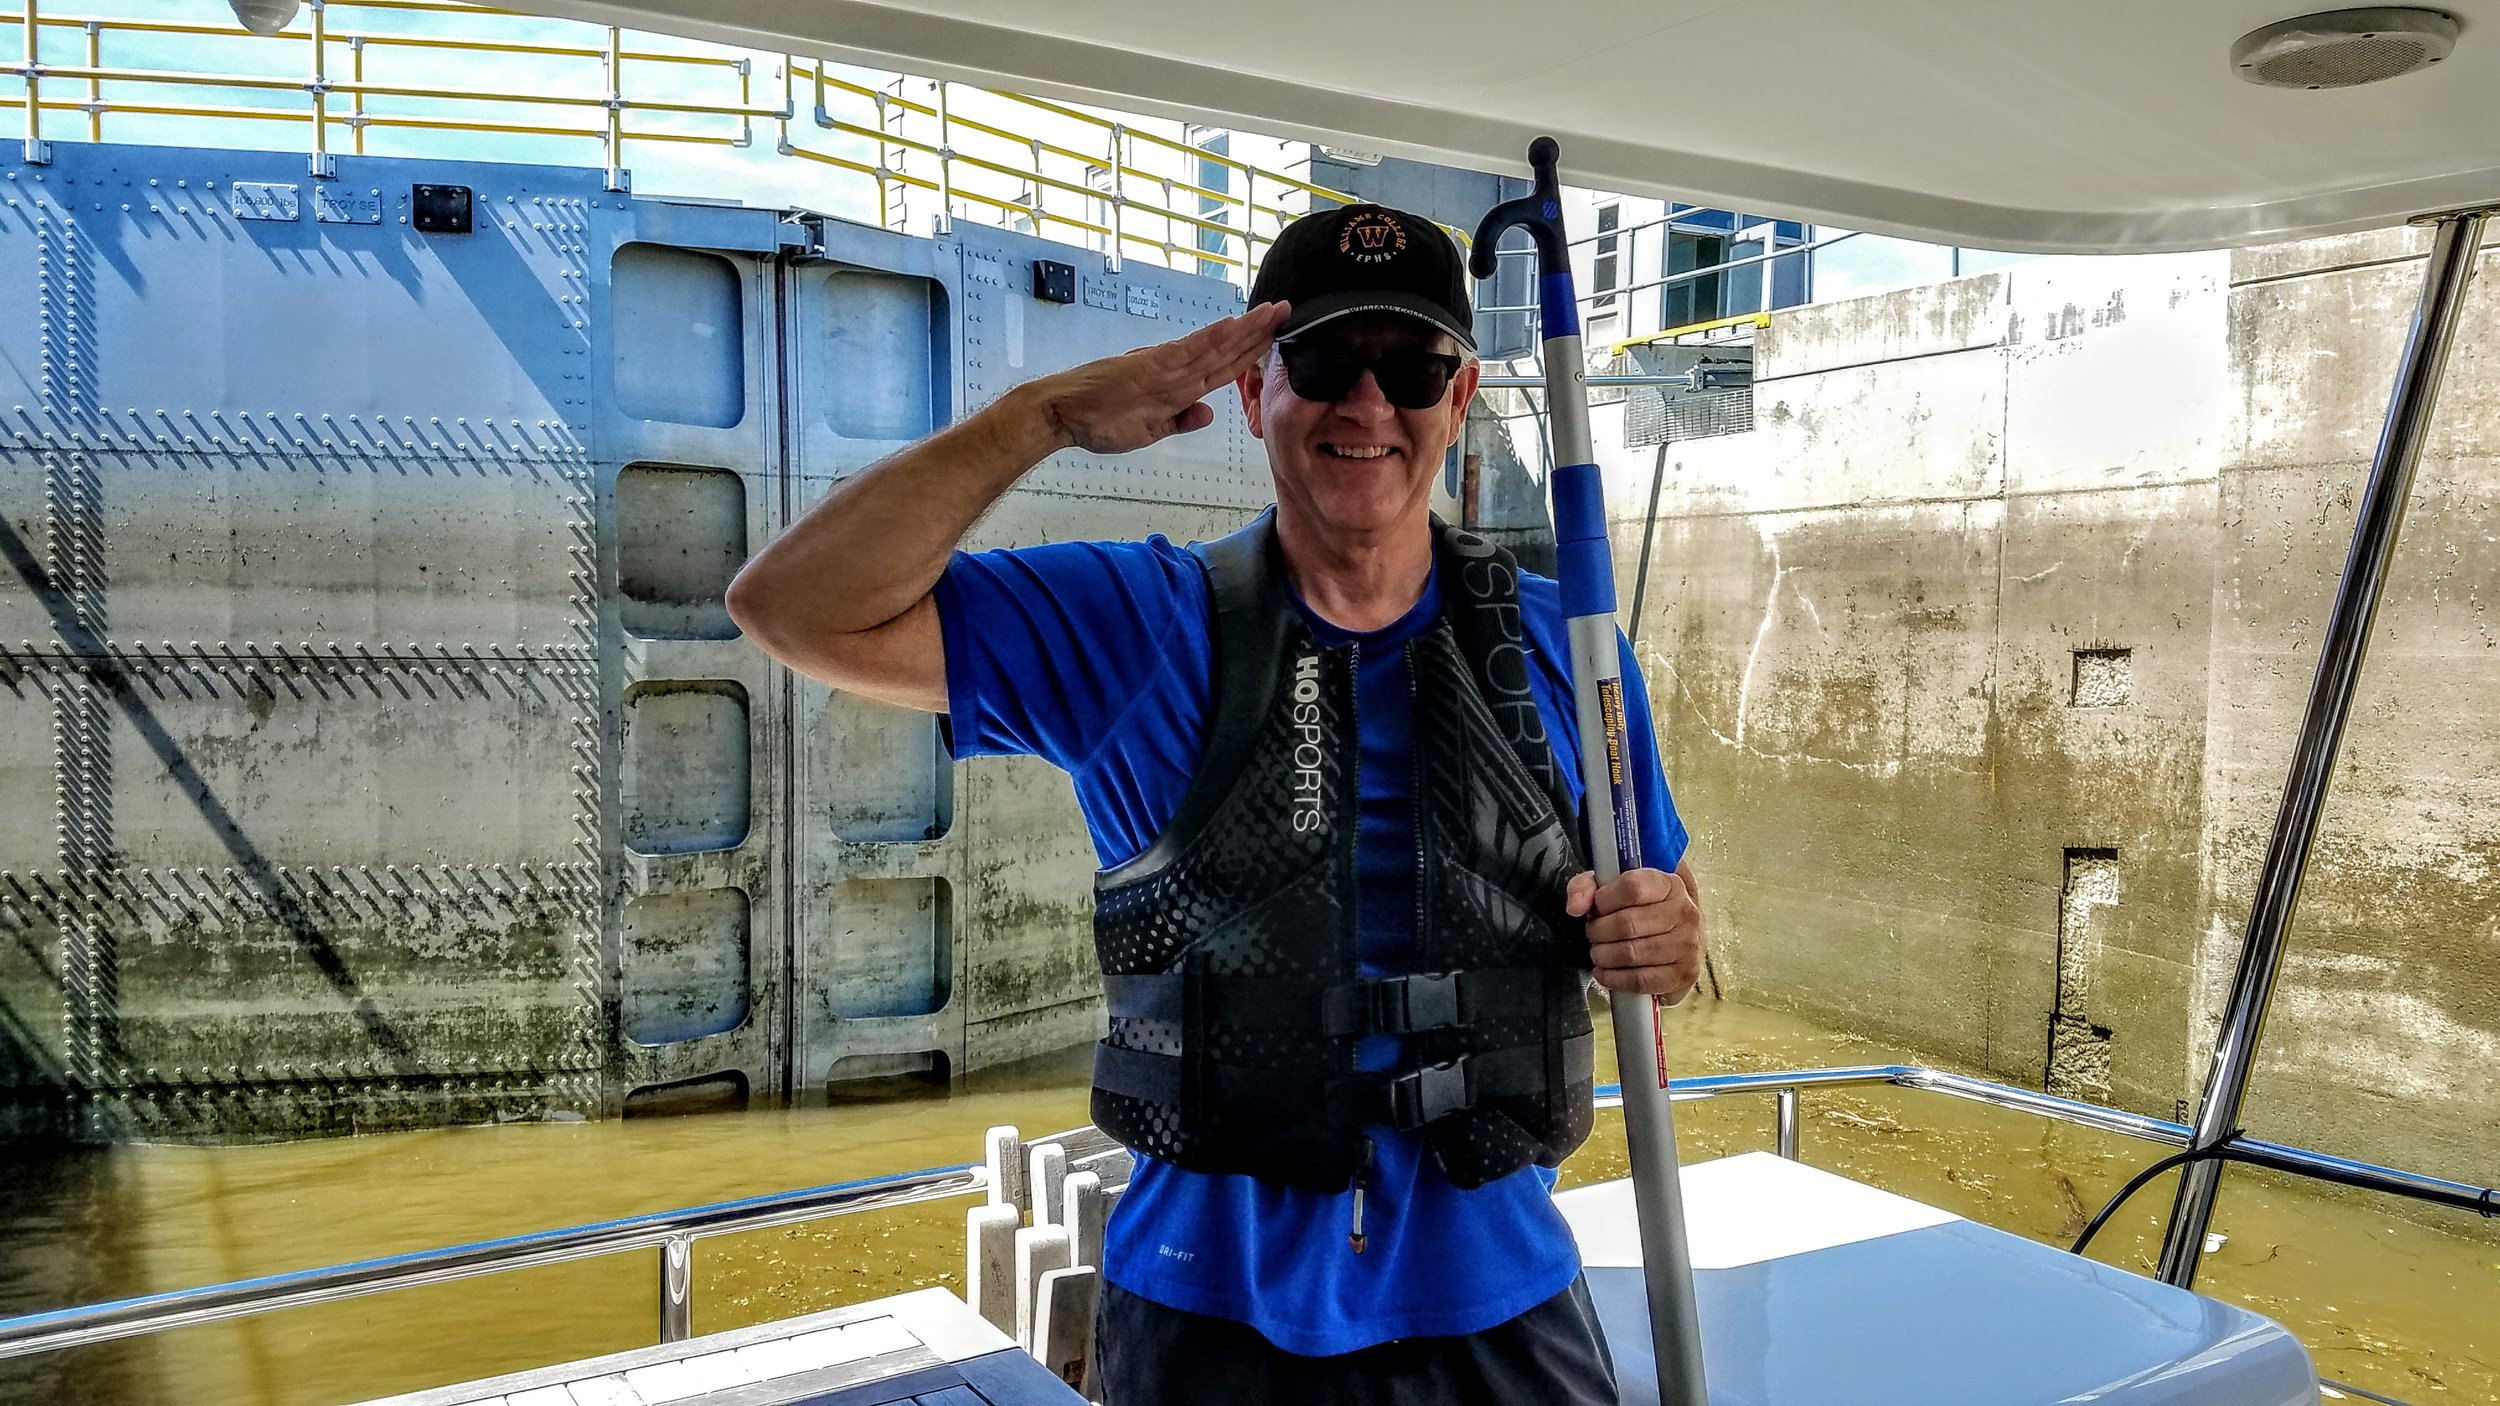 Jim Lennon ready for duty at the Troy Lock…doors closed means water level is rising